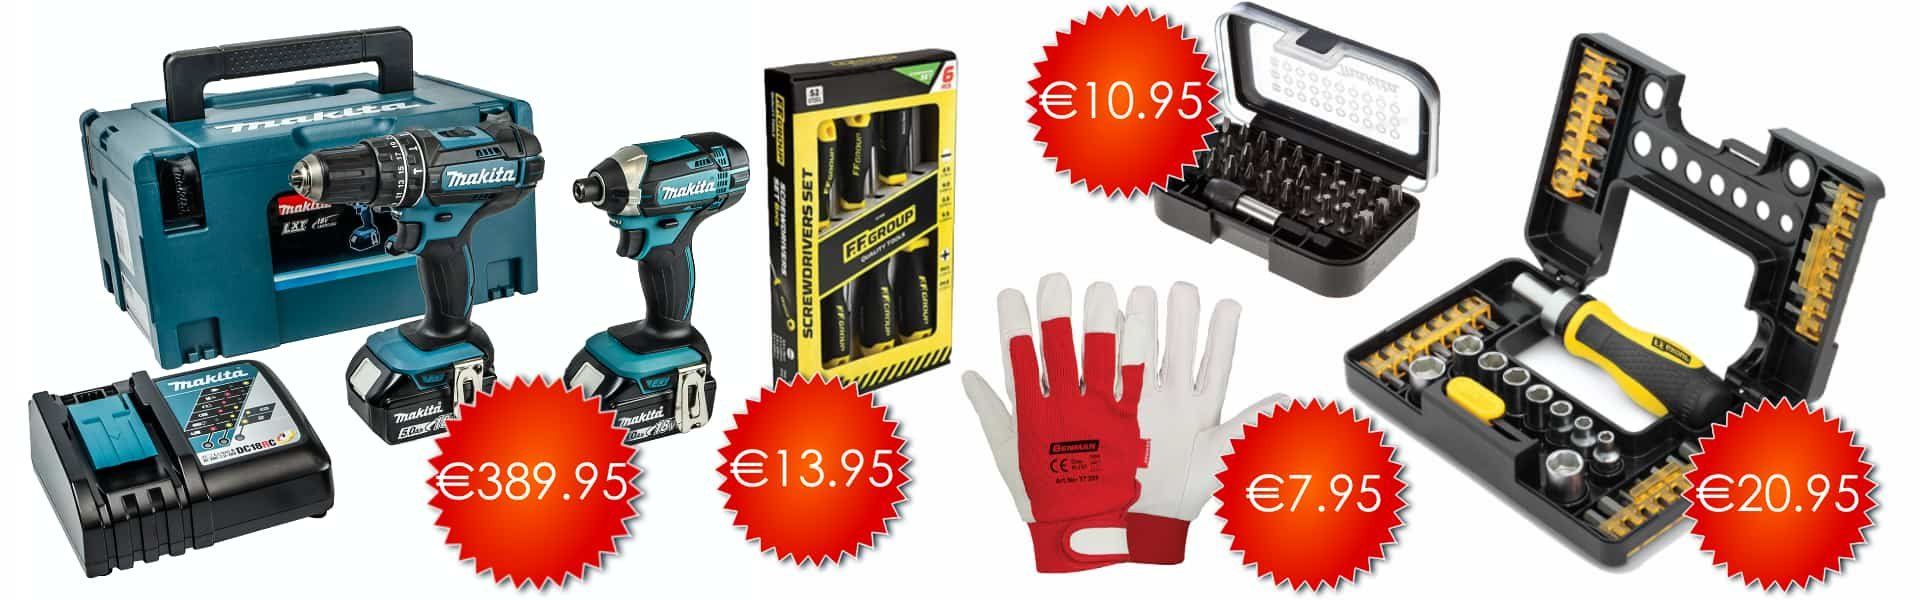 Winter Tools Offers